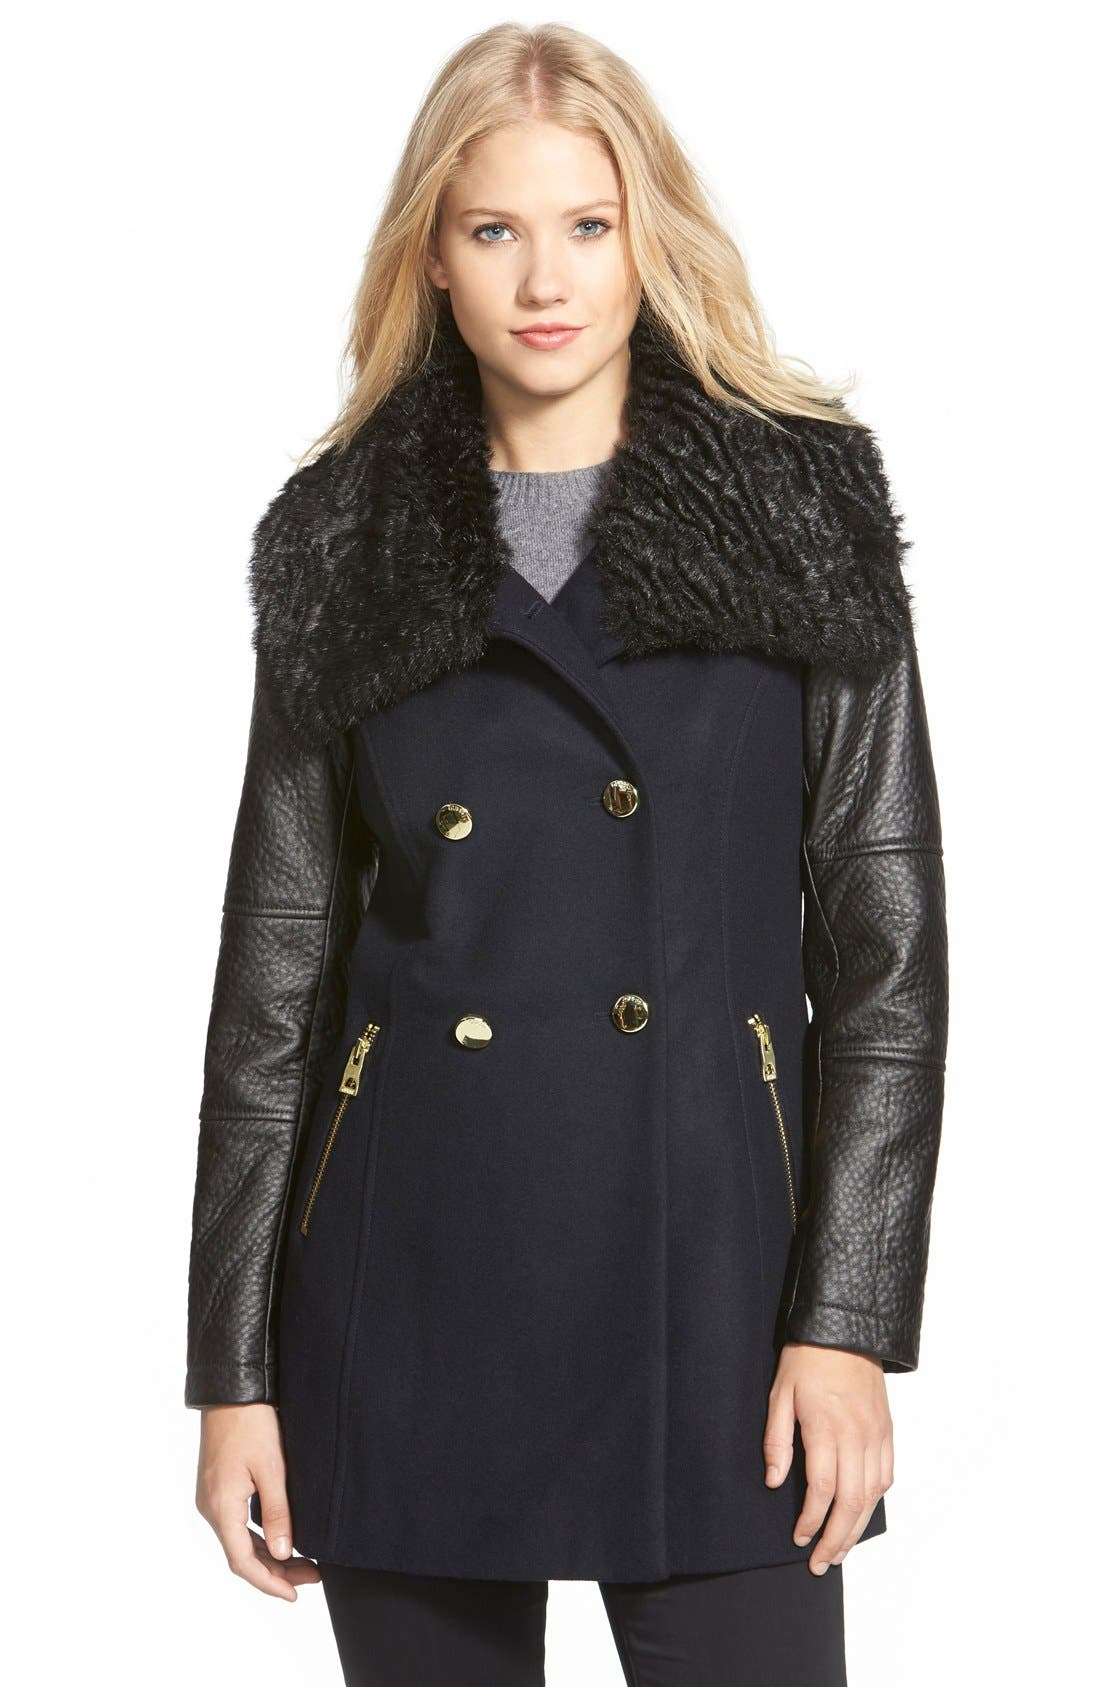 Alternate Image 1 Selected - GUESS Double Breasted Wool Blend Coat with Faux Fur & Faux Leather Trim